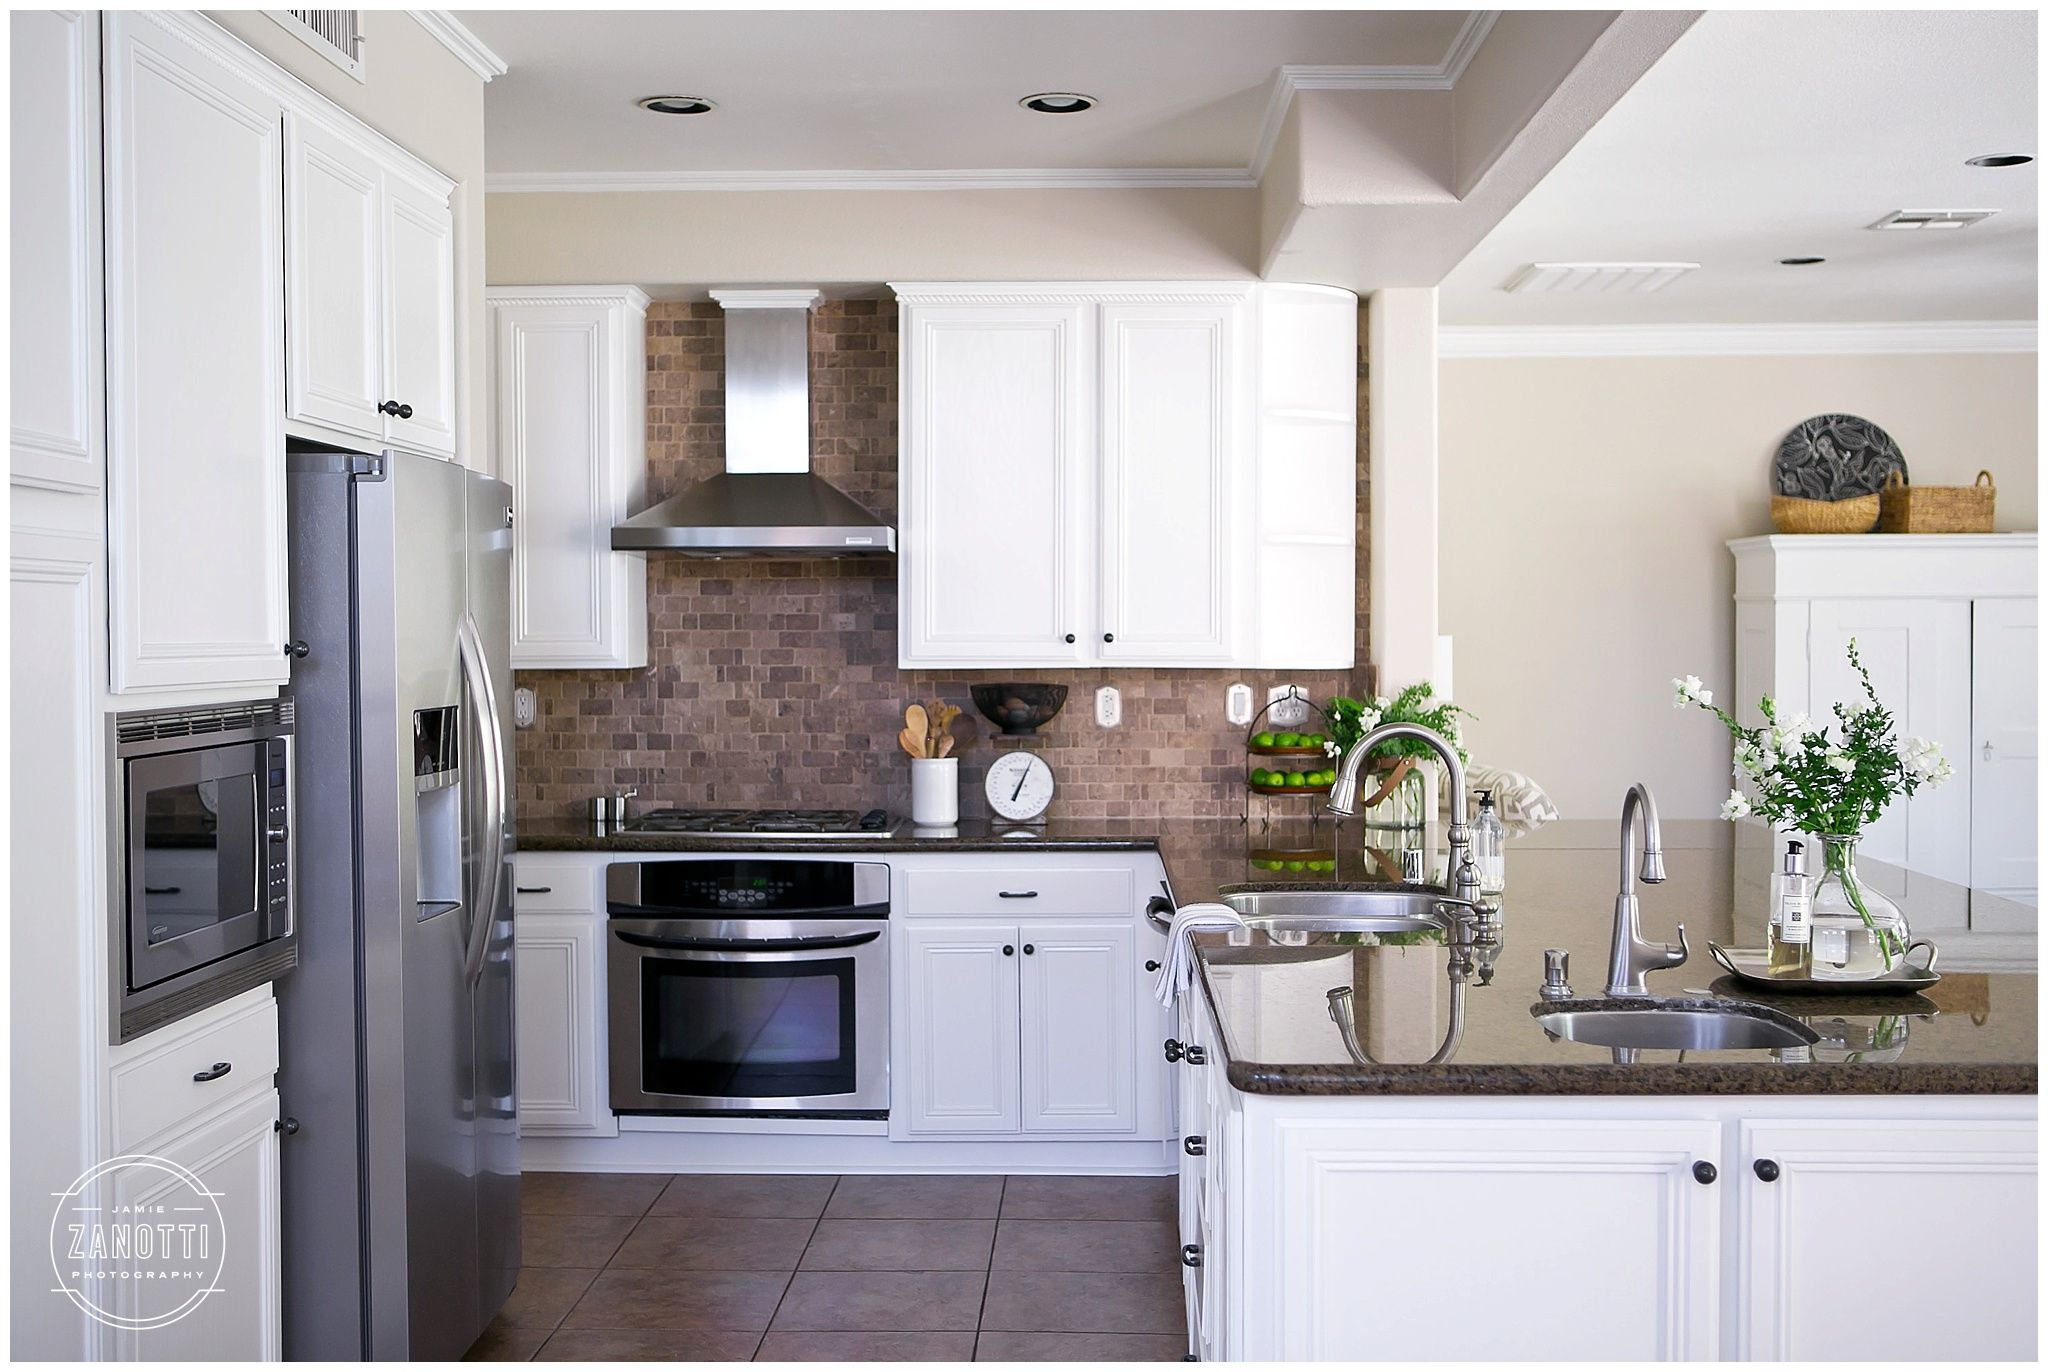 diy white painted oak kitchen cabinets before and after 7 tips oak kitchen cabinets on kitchen cabinets painted before and after id=49123